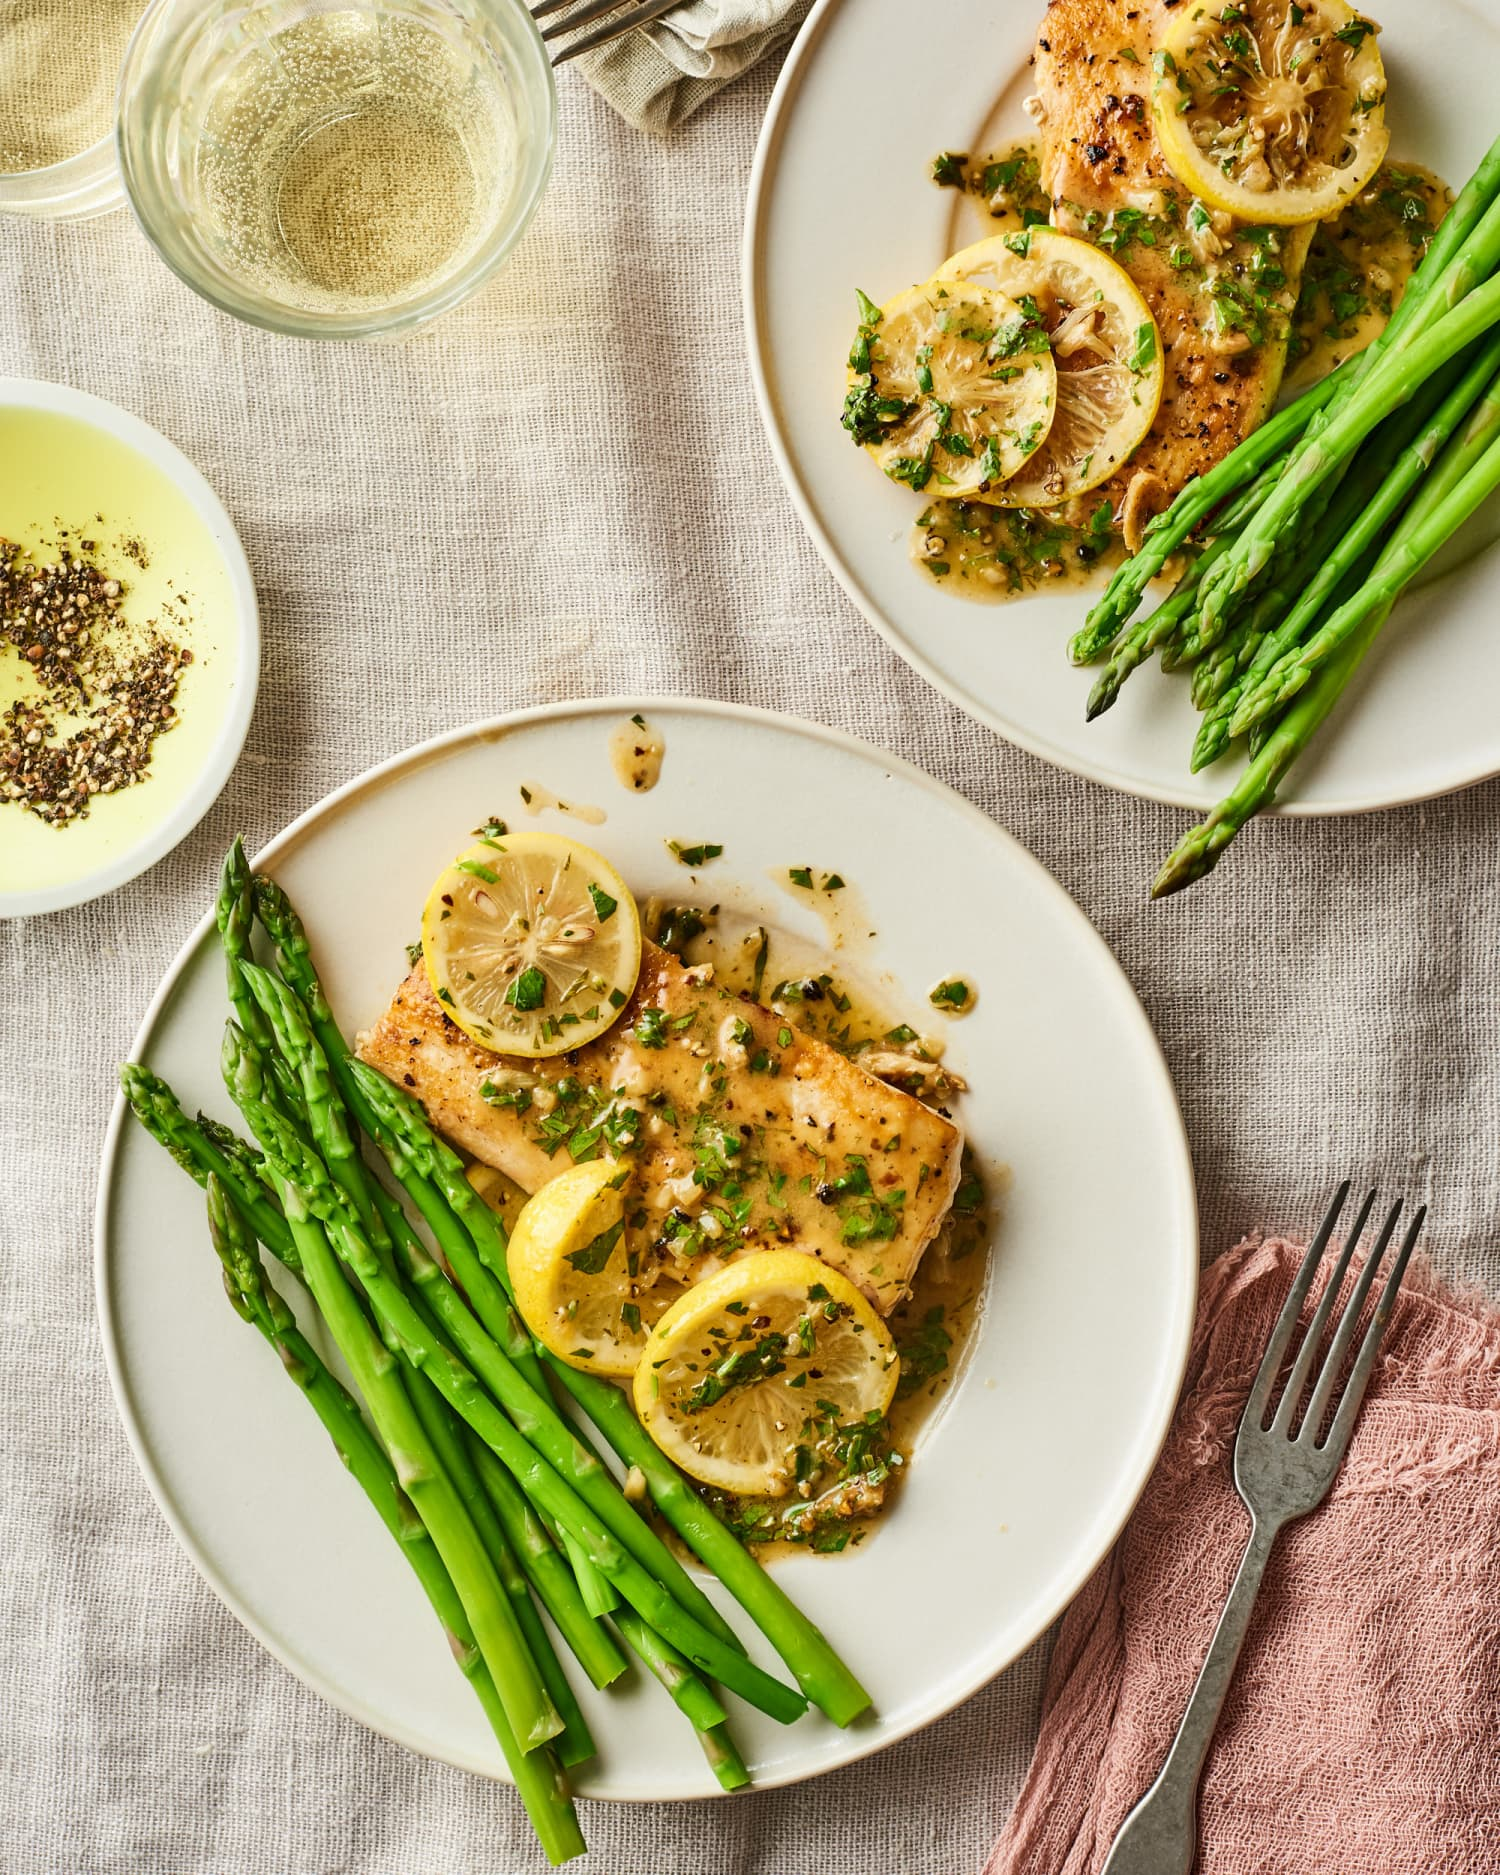 7 Easy Fish Recipes for All the Fridays of Lent